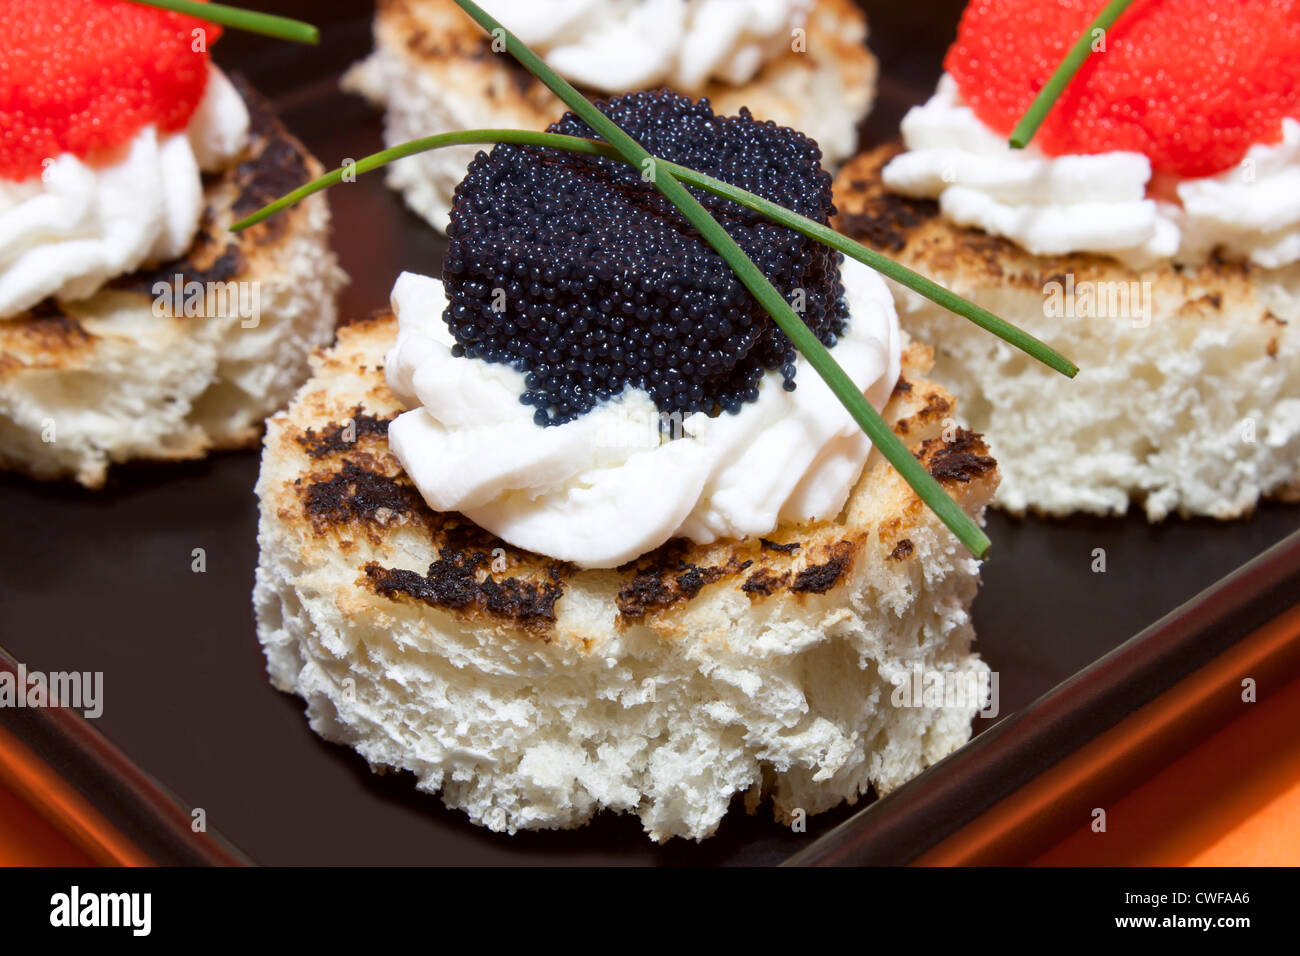 Red and black caviar canapés decorated with chives. - Stock Image